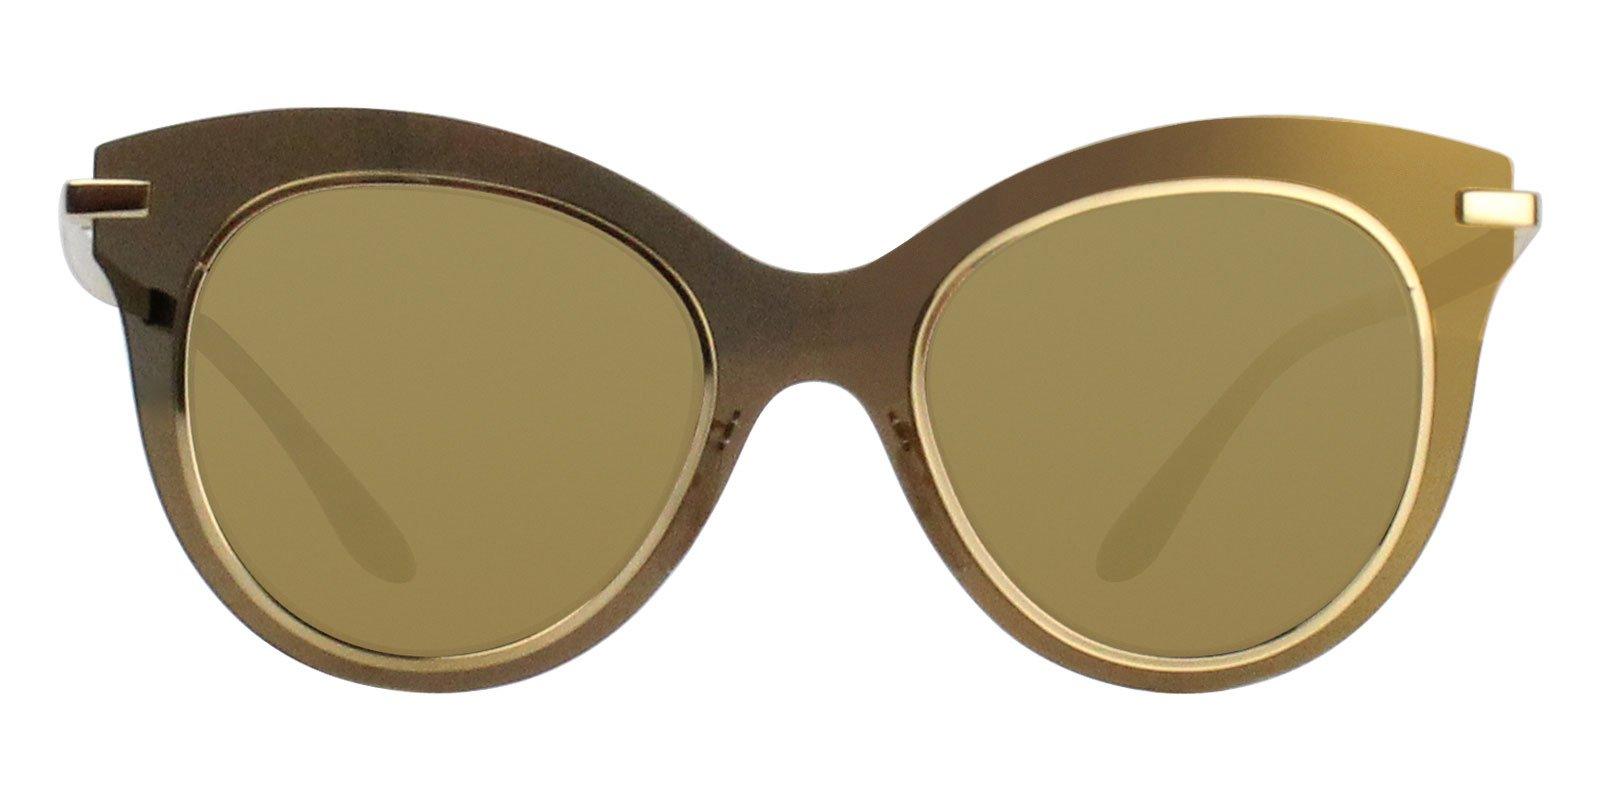 819537c4928 Dolce Gabbana DG2172 Gold   Gold Lens Mirror Sunglasses – shadesdaddy